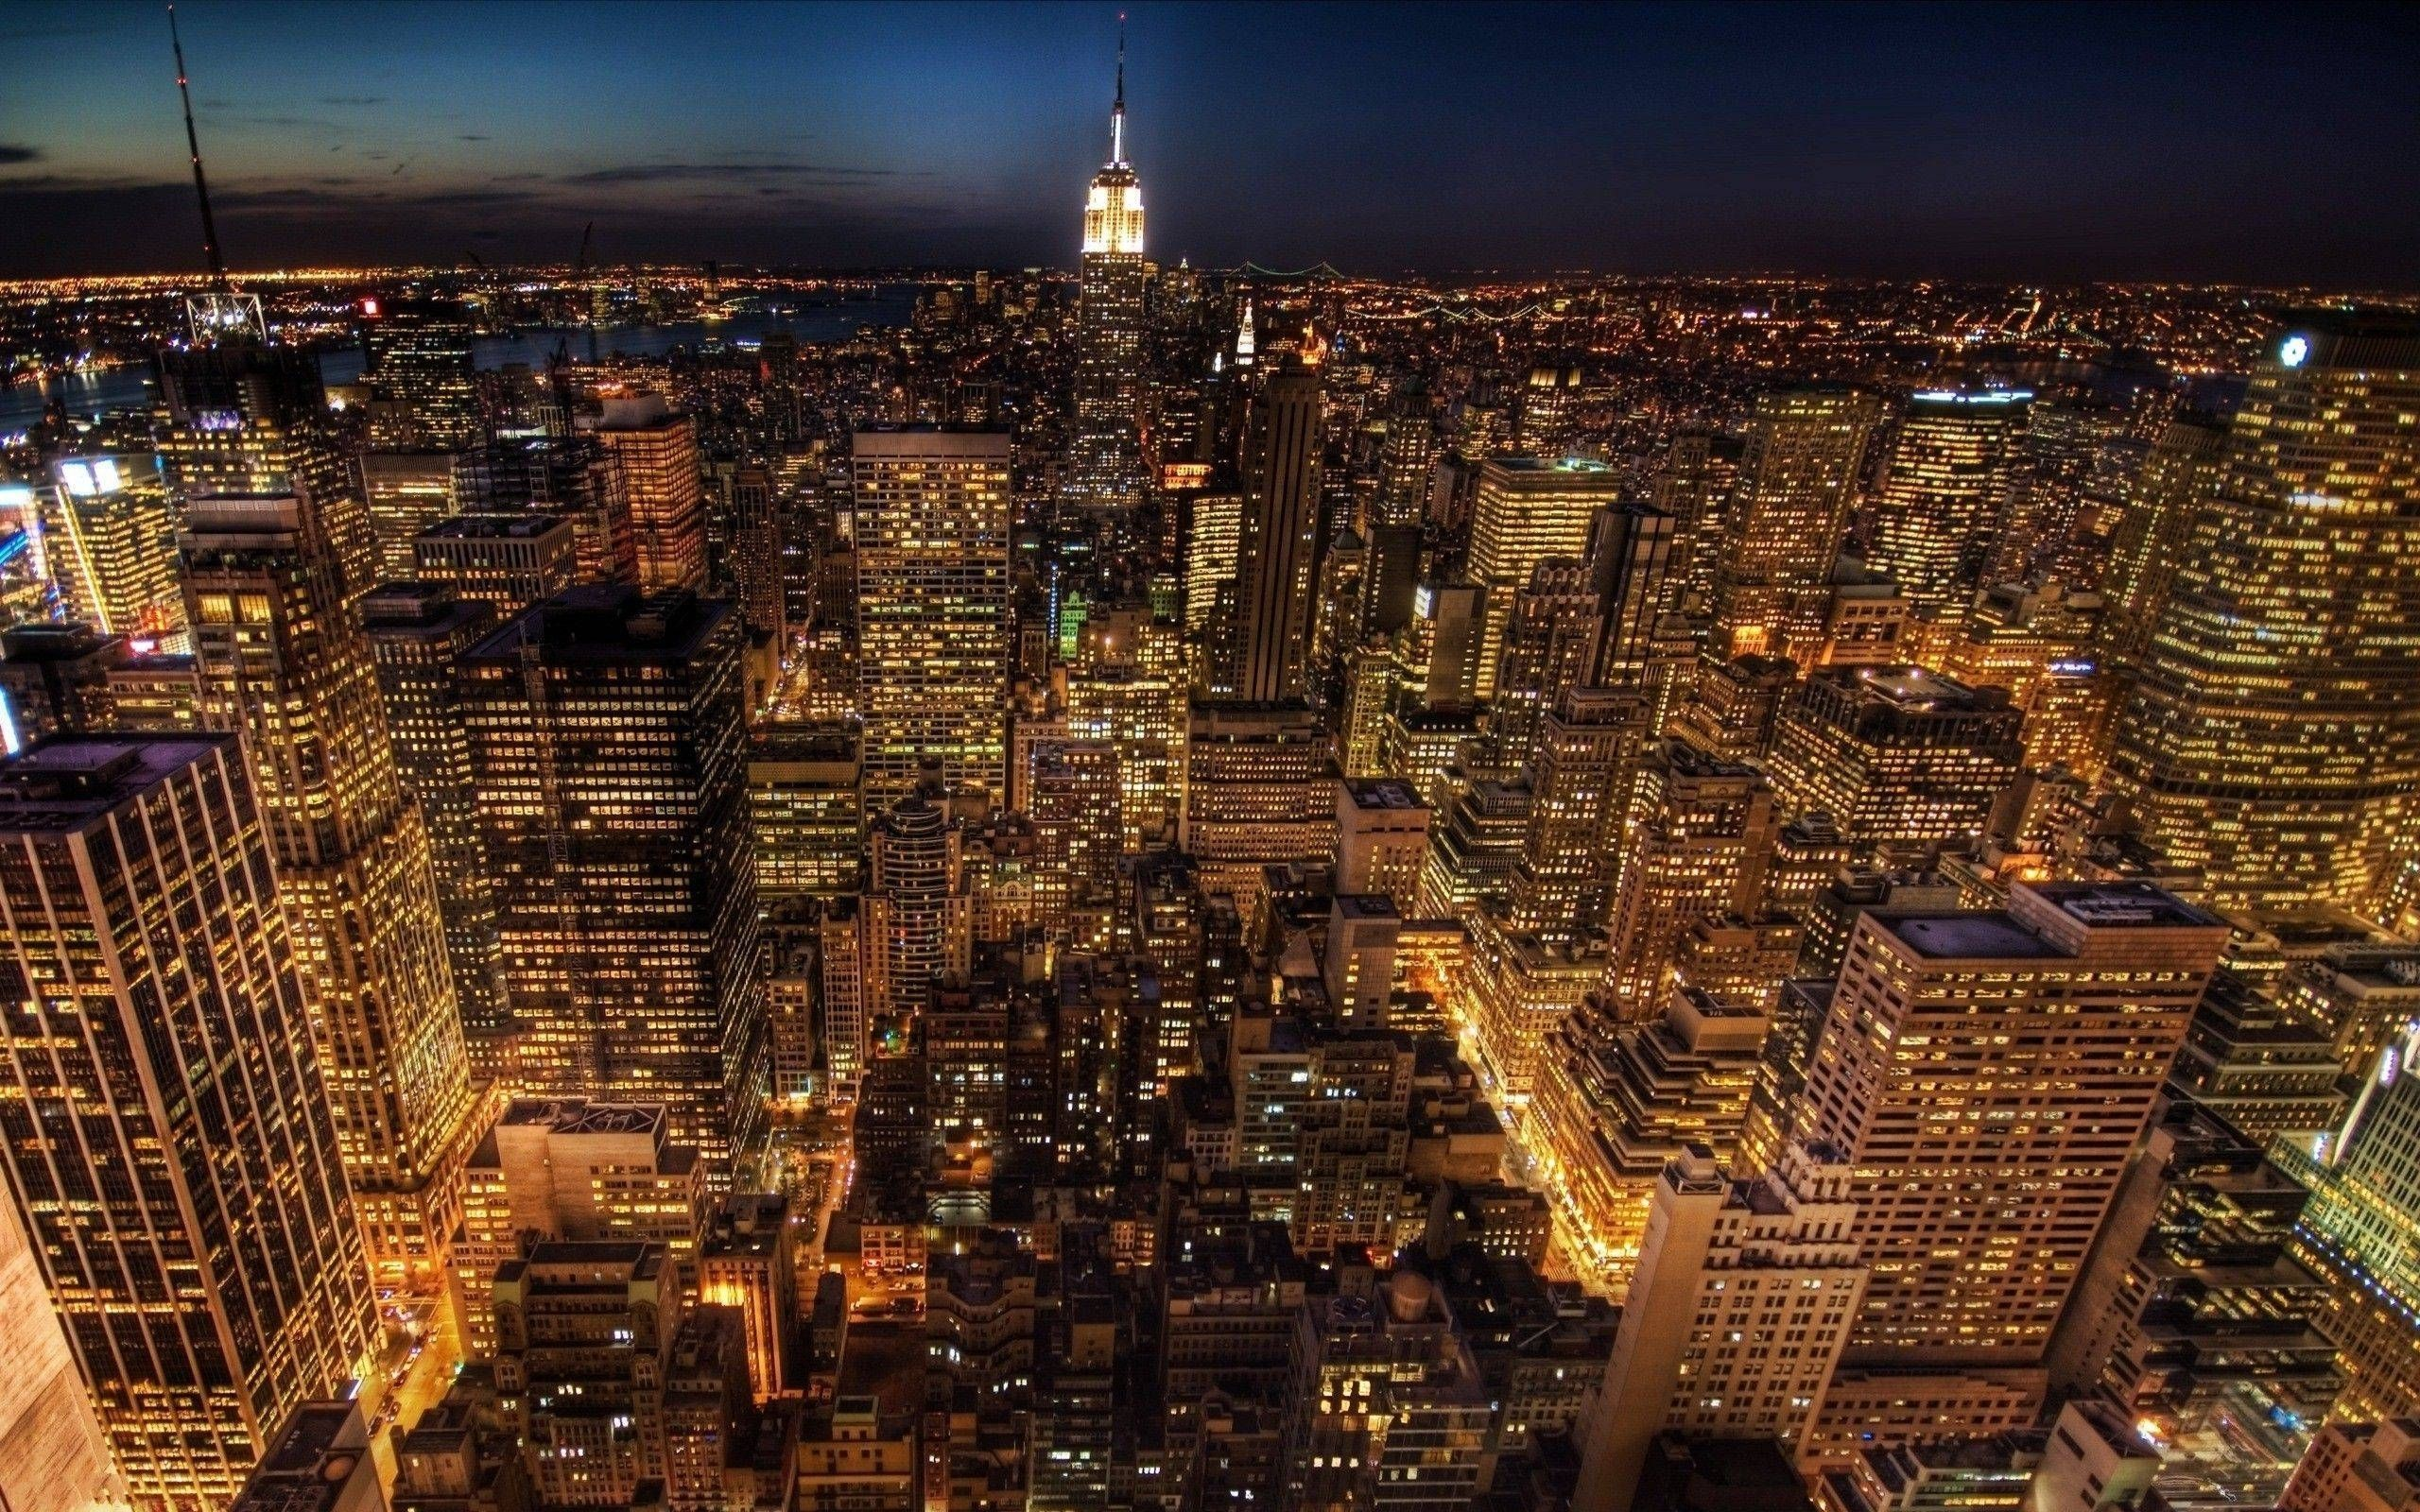 10 Best New York City Night Hd Wallpaper FULL HD 1080p For PC Background | Wallpaper for PC in ...